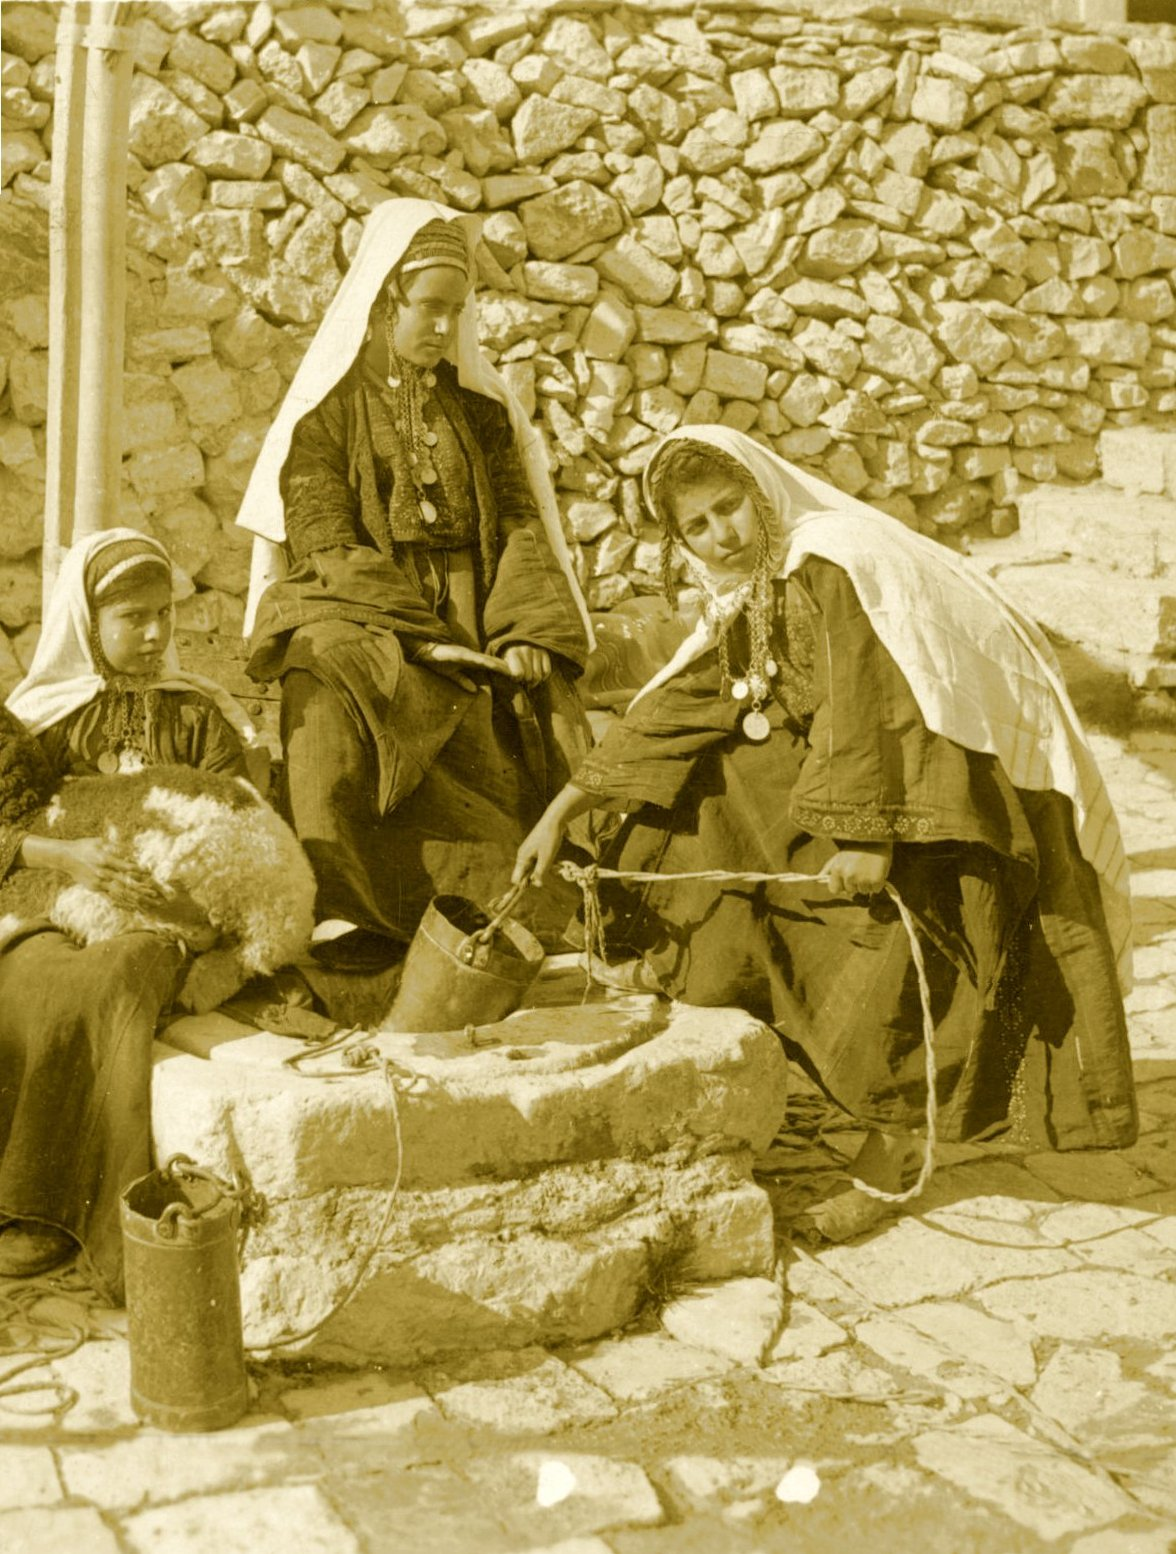 Bethlehem - بيت لحم : Women of Bethlehem 151 (late 19th, early 20th c.) - Drawing water from a local well (Per Reem Ackall)